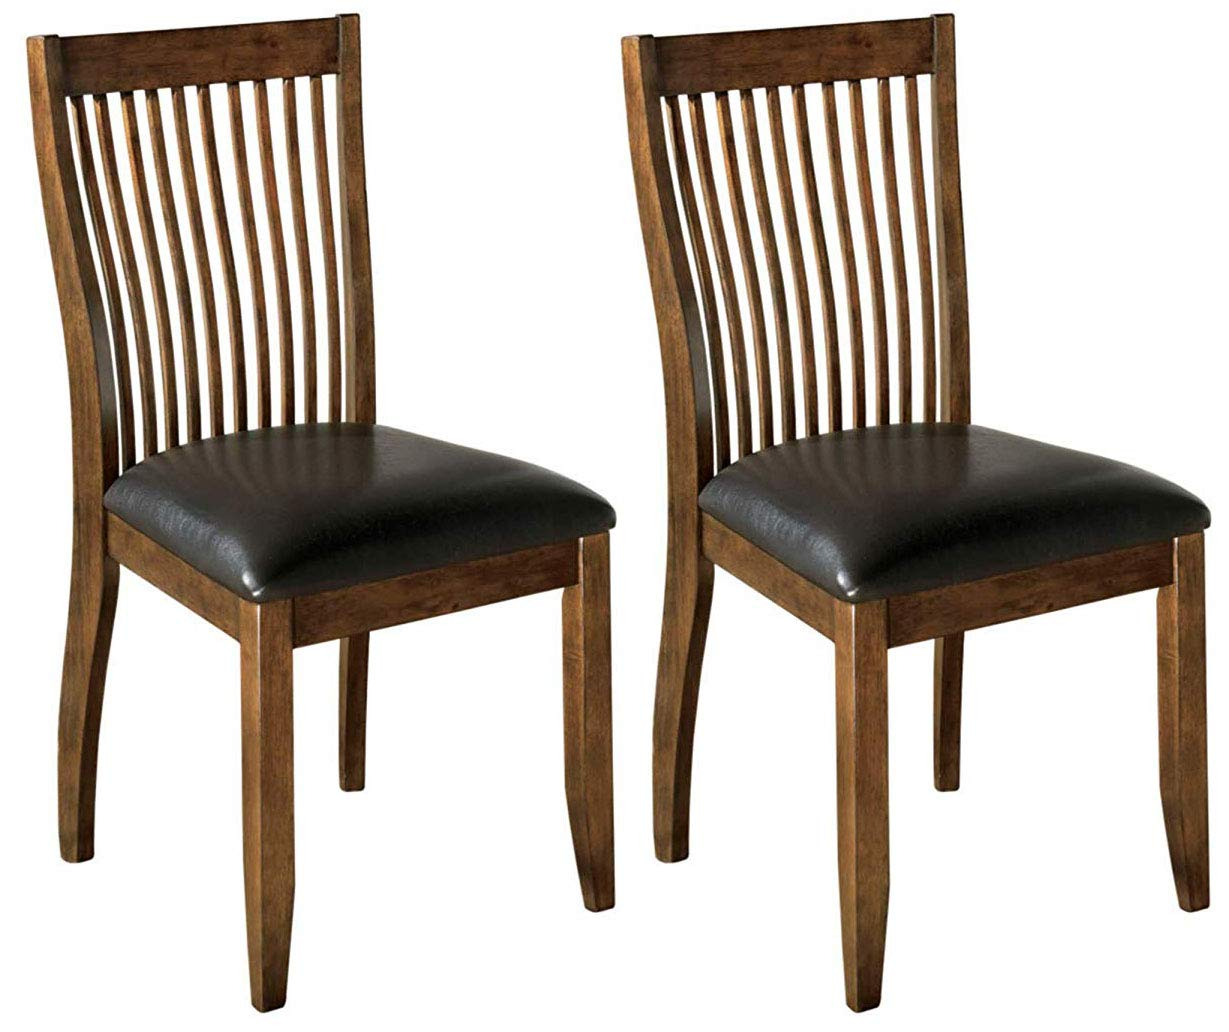 Ashley Furniture Signature Design - Stuman Dining Side Chair - Comb Back - Set of 2 - Brown Base and Black Upolstered Seat by Signature Design by Ashley